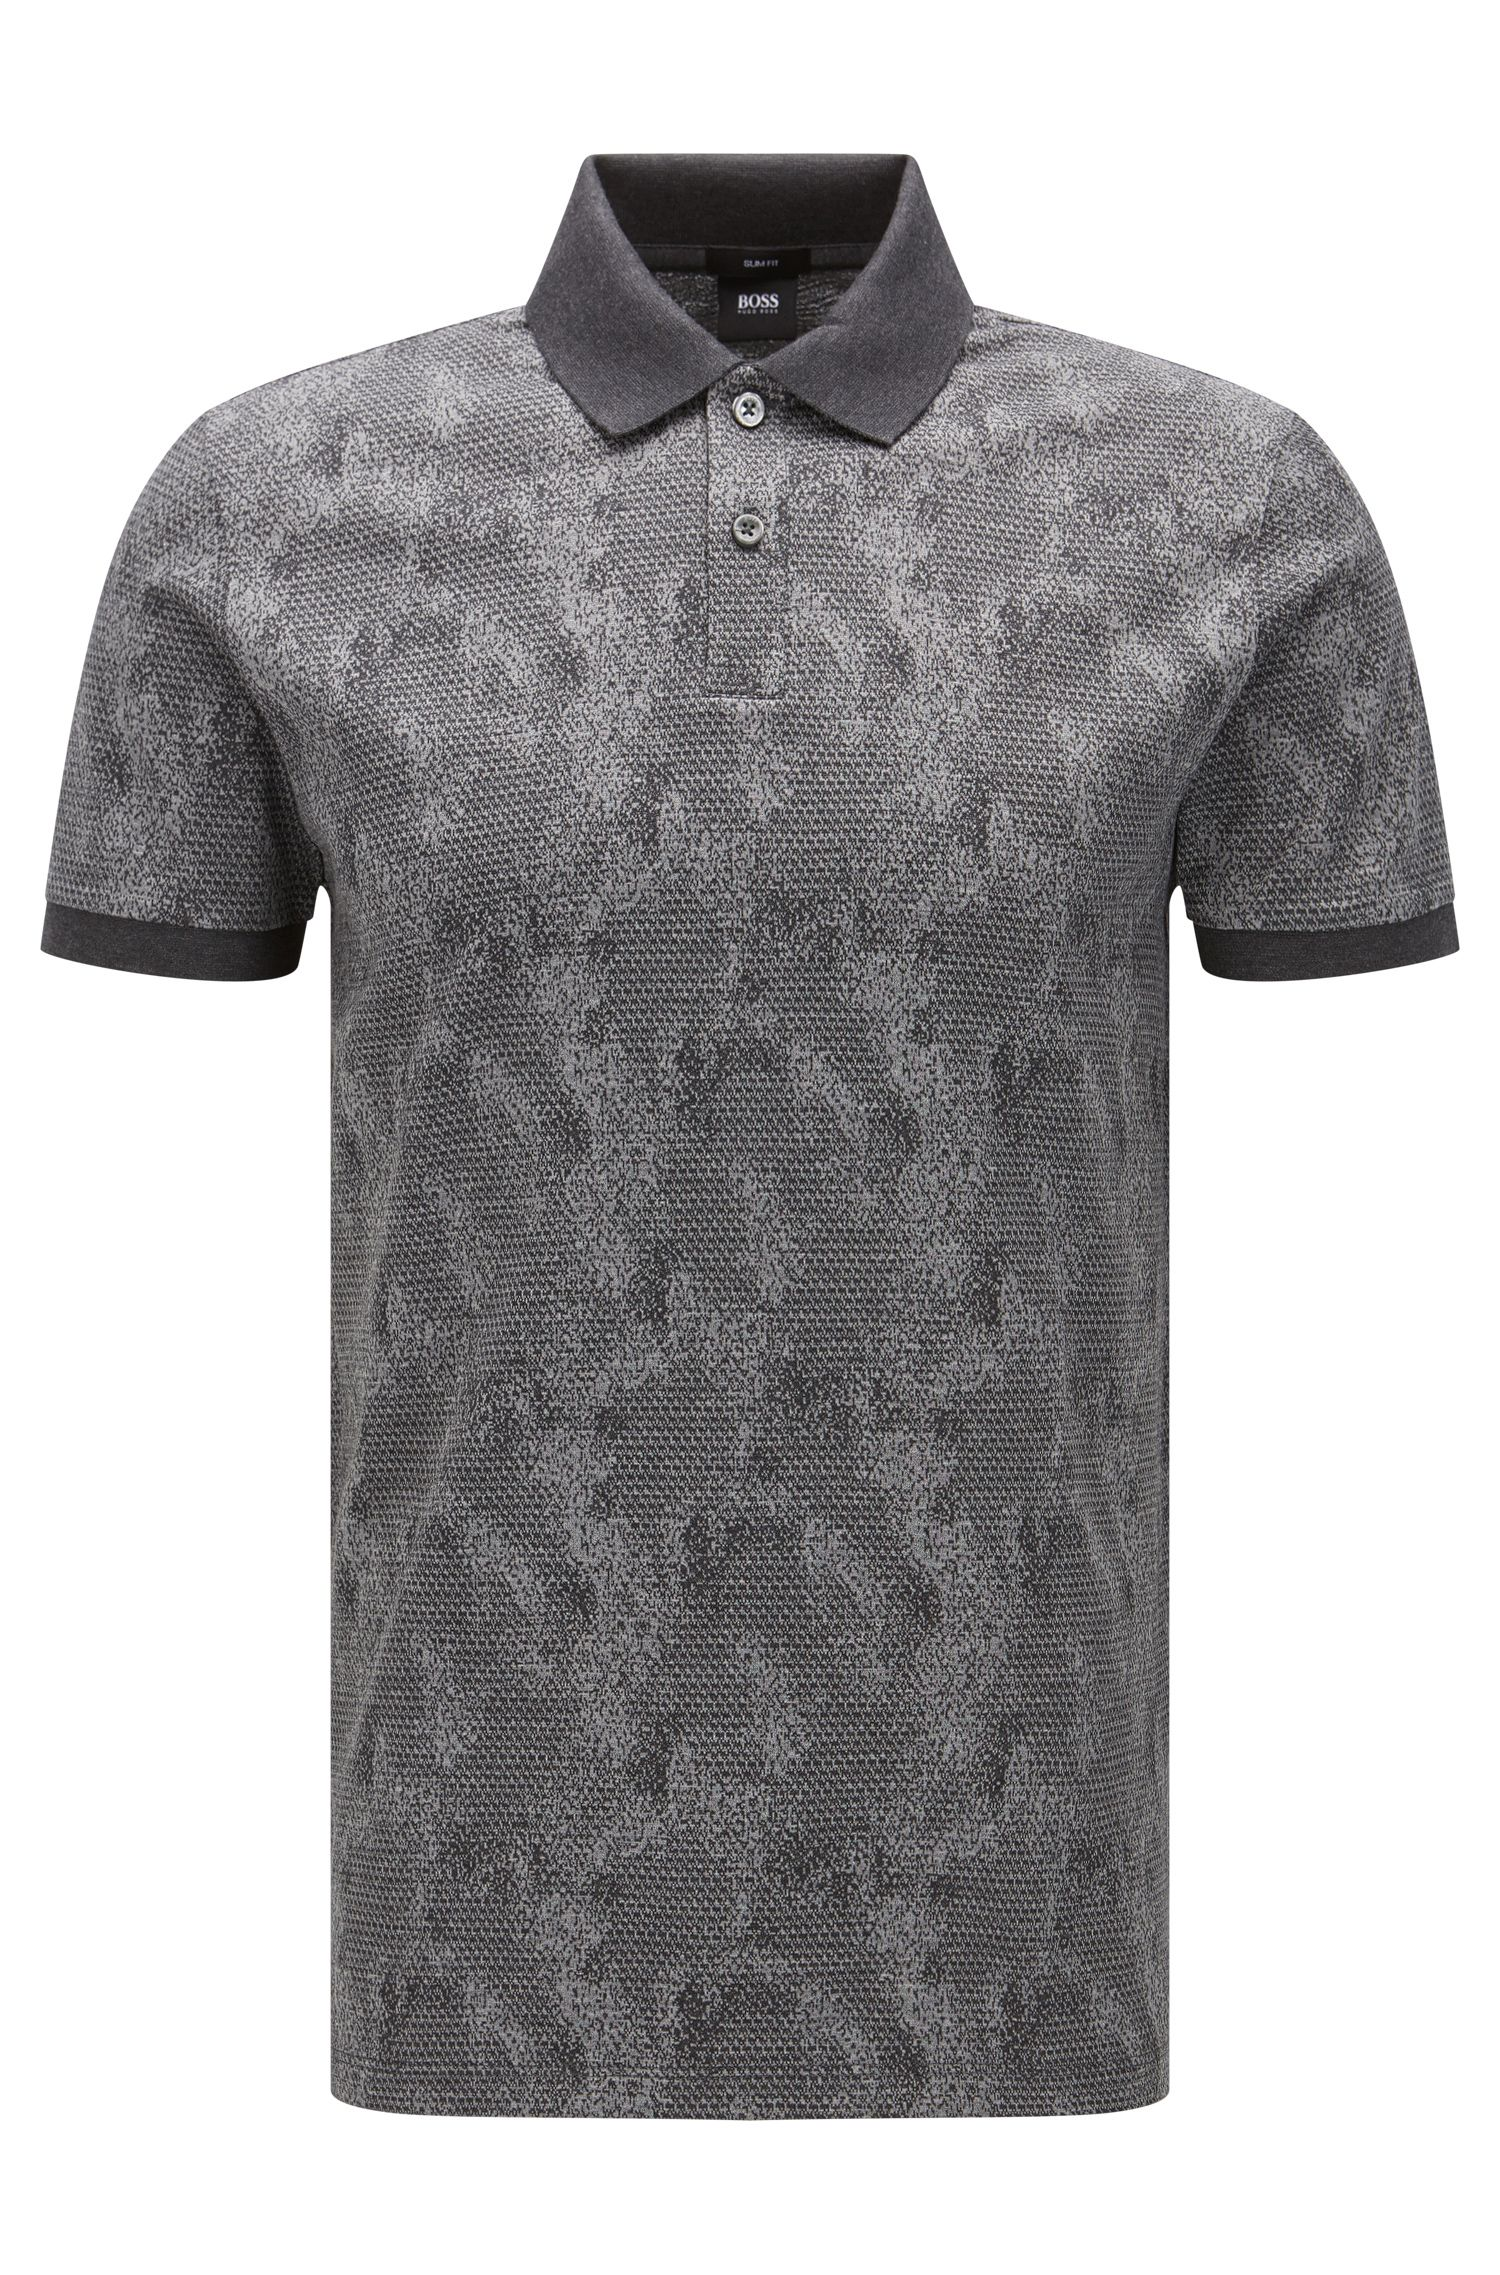 'Phillipson' | Slim Fit, Cotton Patterned Polo Shirt